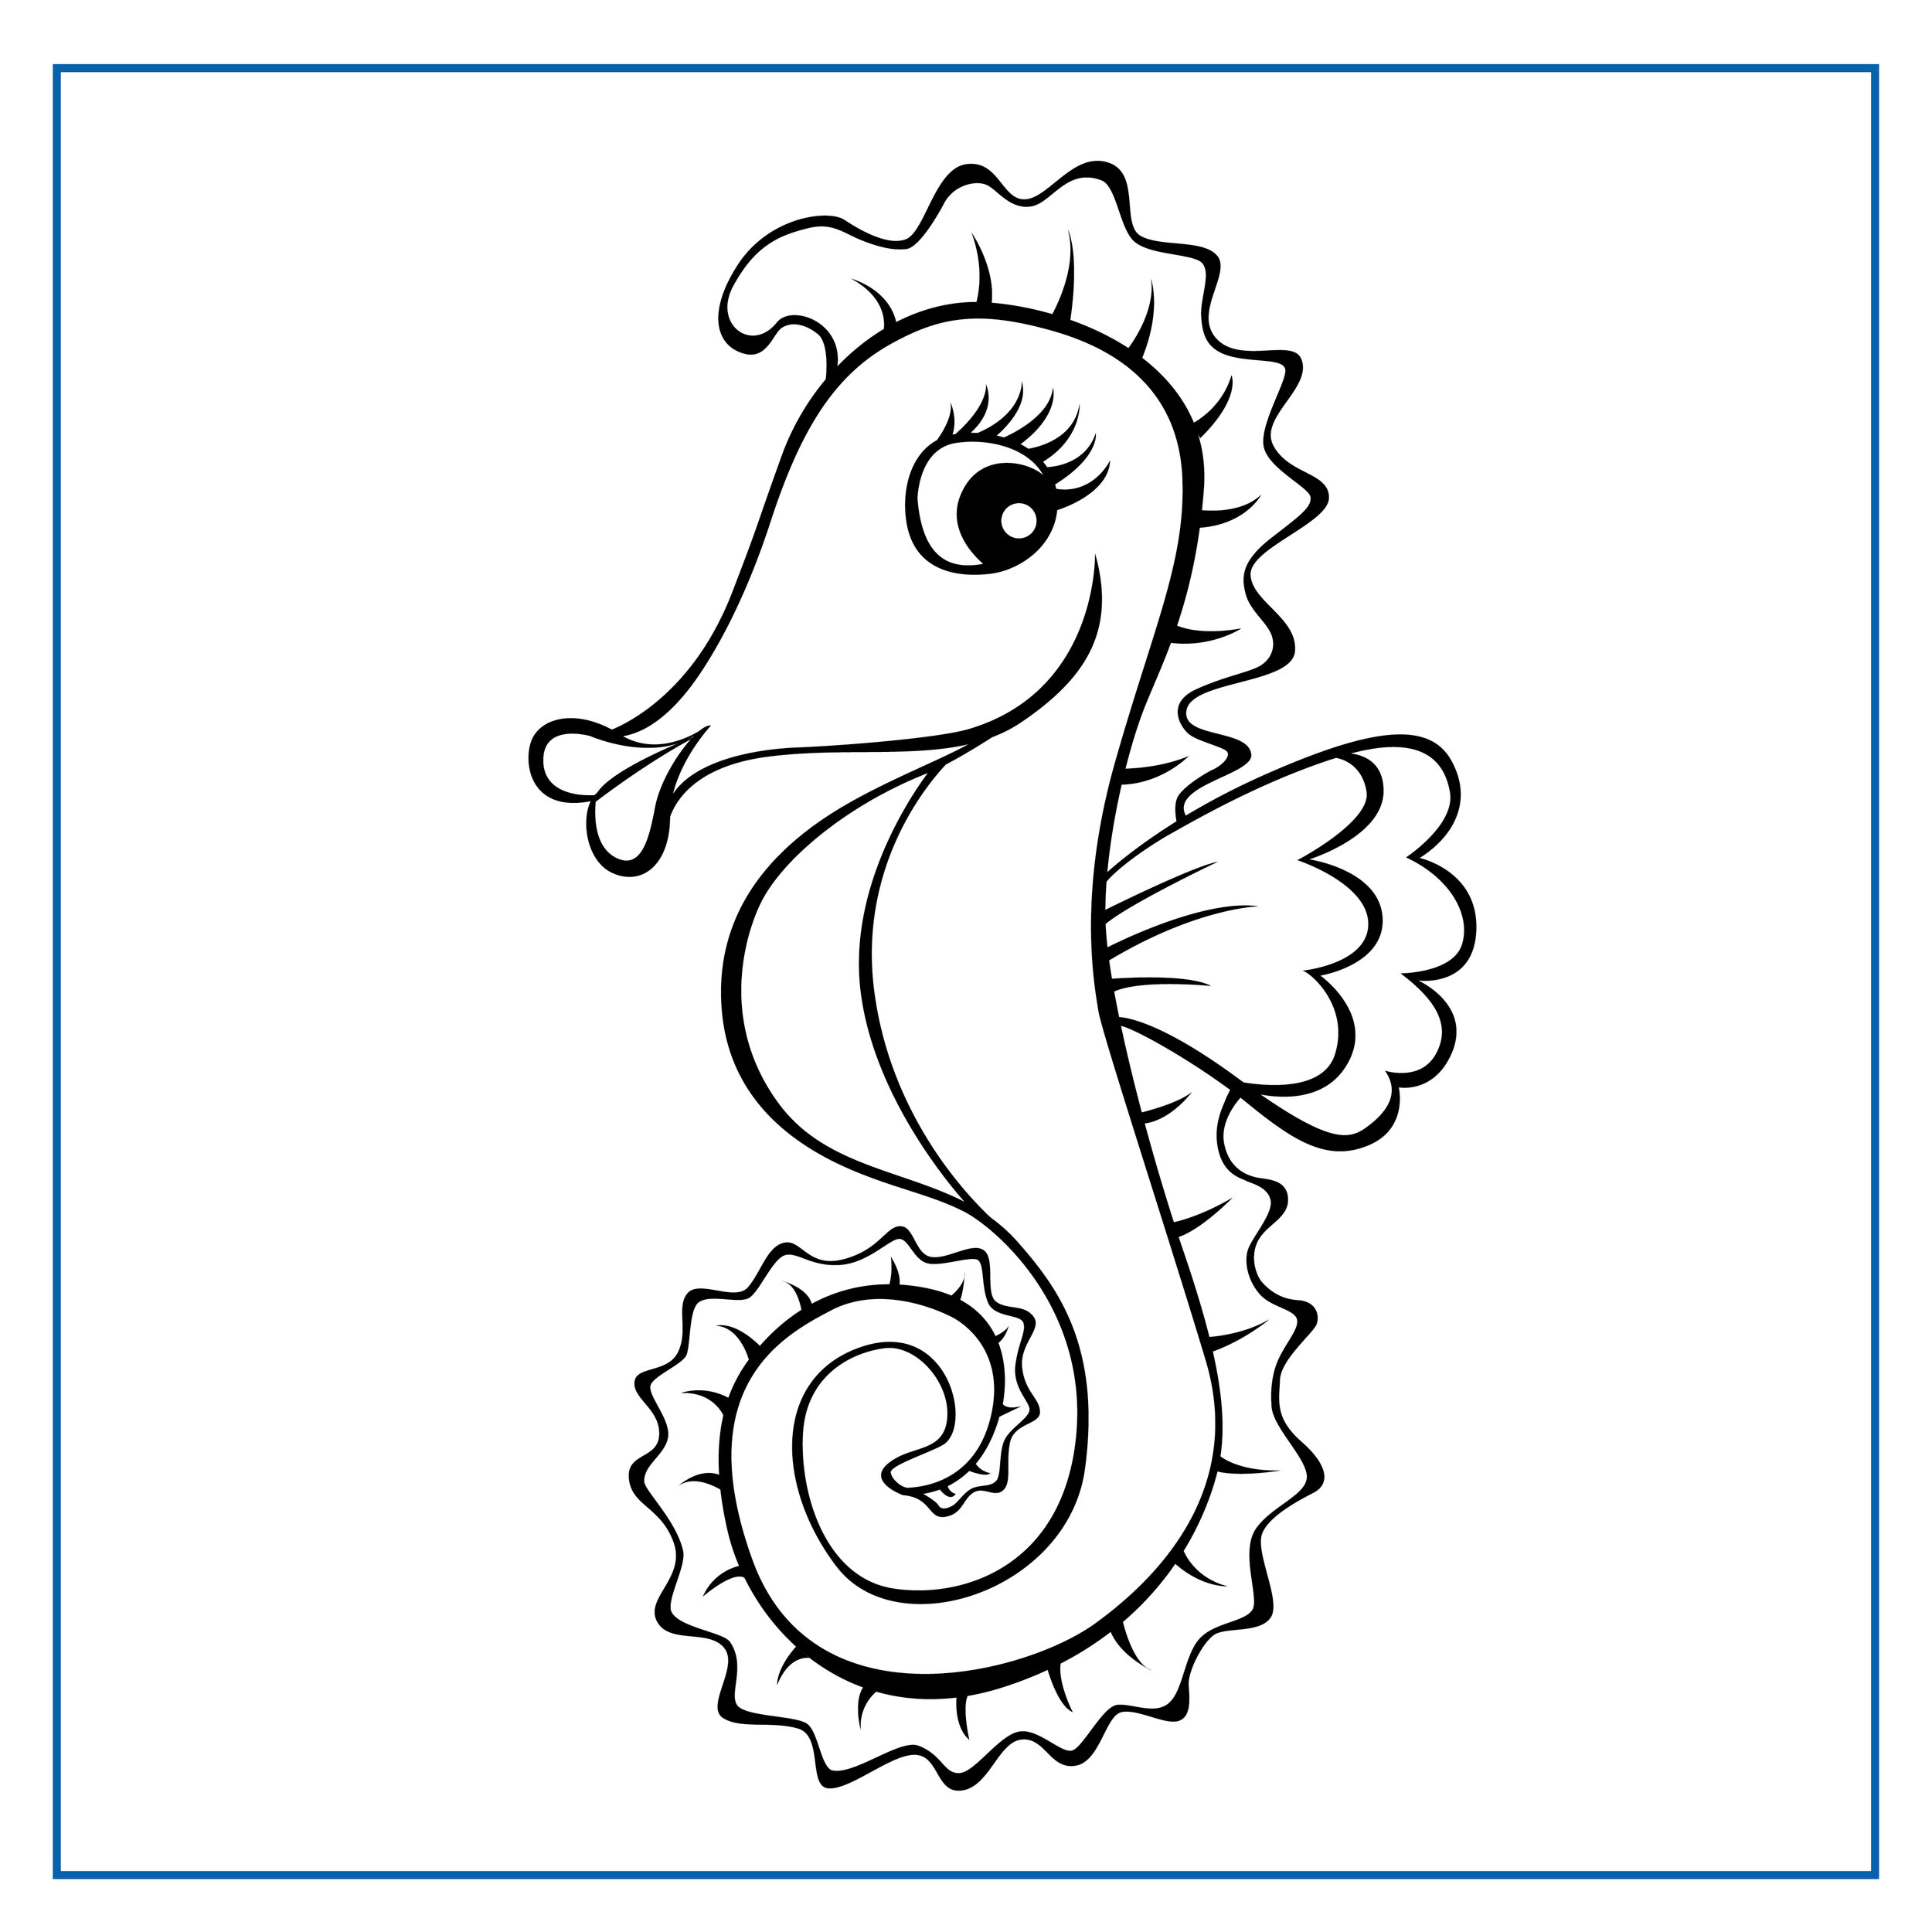 Sophie Seahorse - Click on my picture to print me out and colour me in